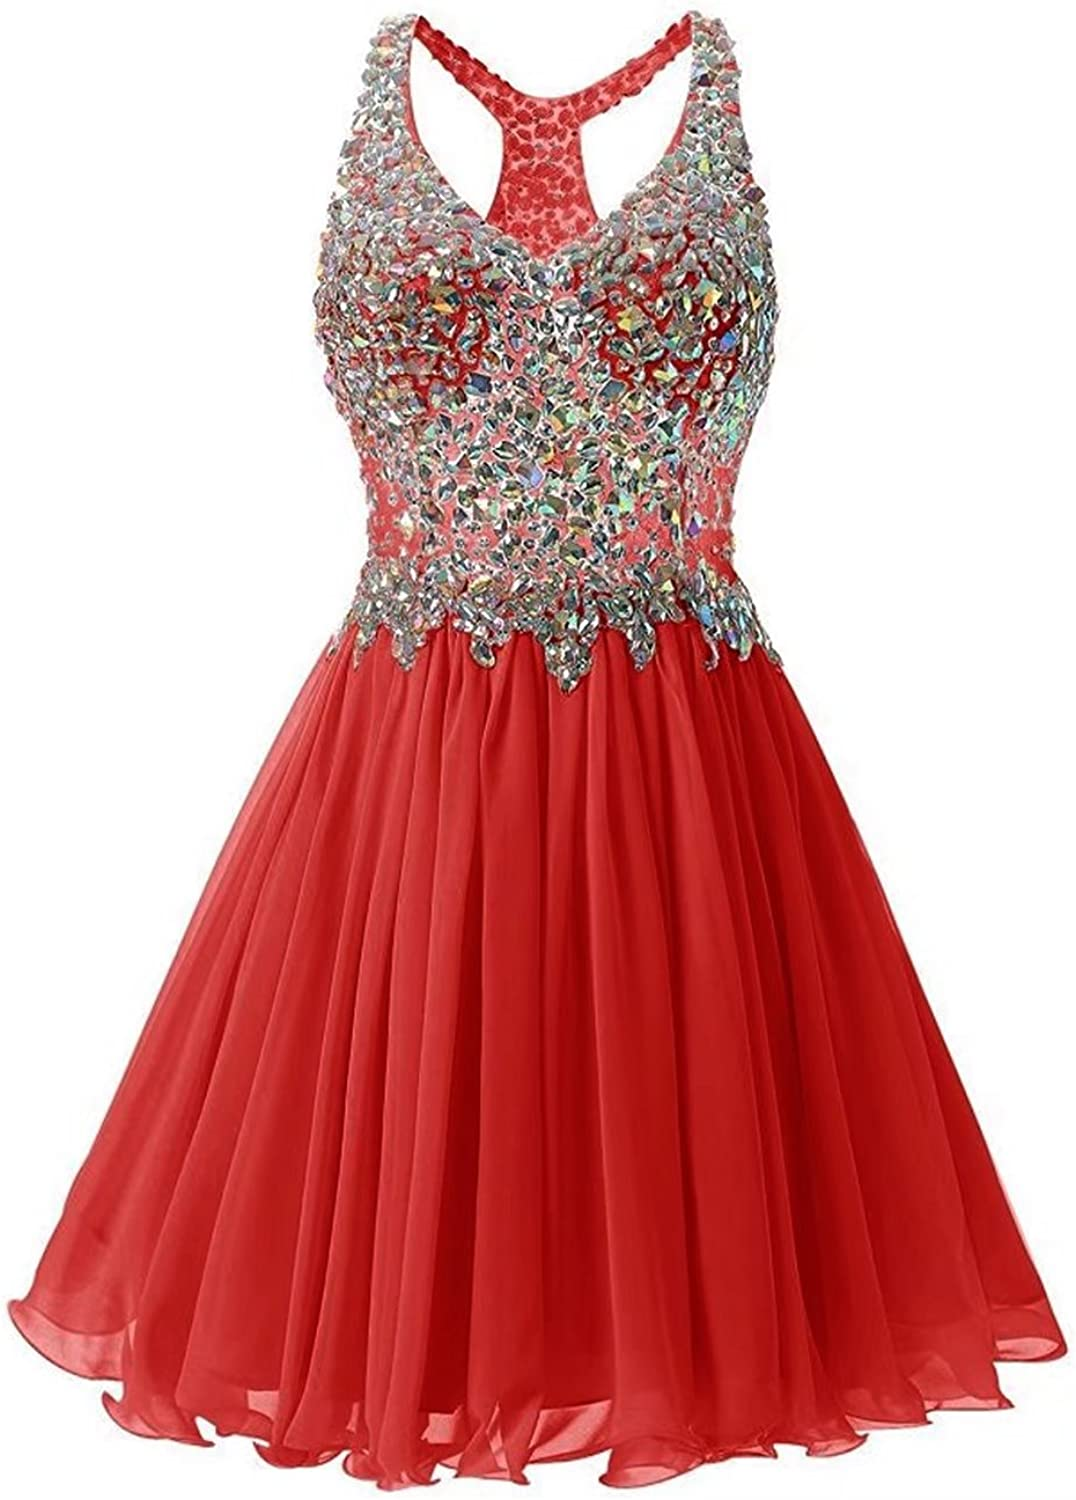 YOUTODRESS Women's V Neck Backlesss Tulle Evening Homecoming Bridemaid Dress with Beaded